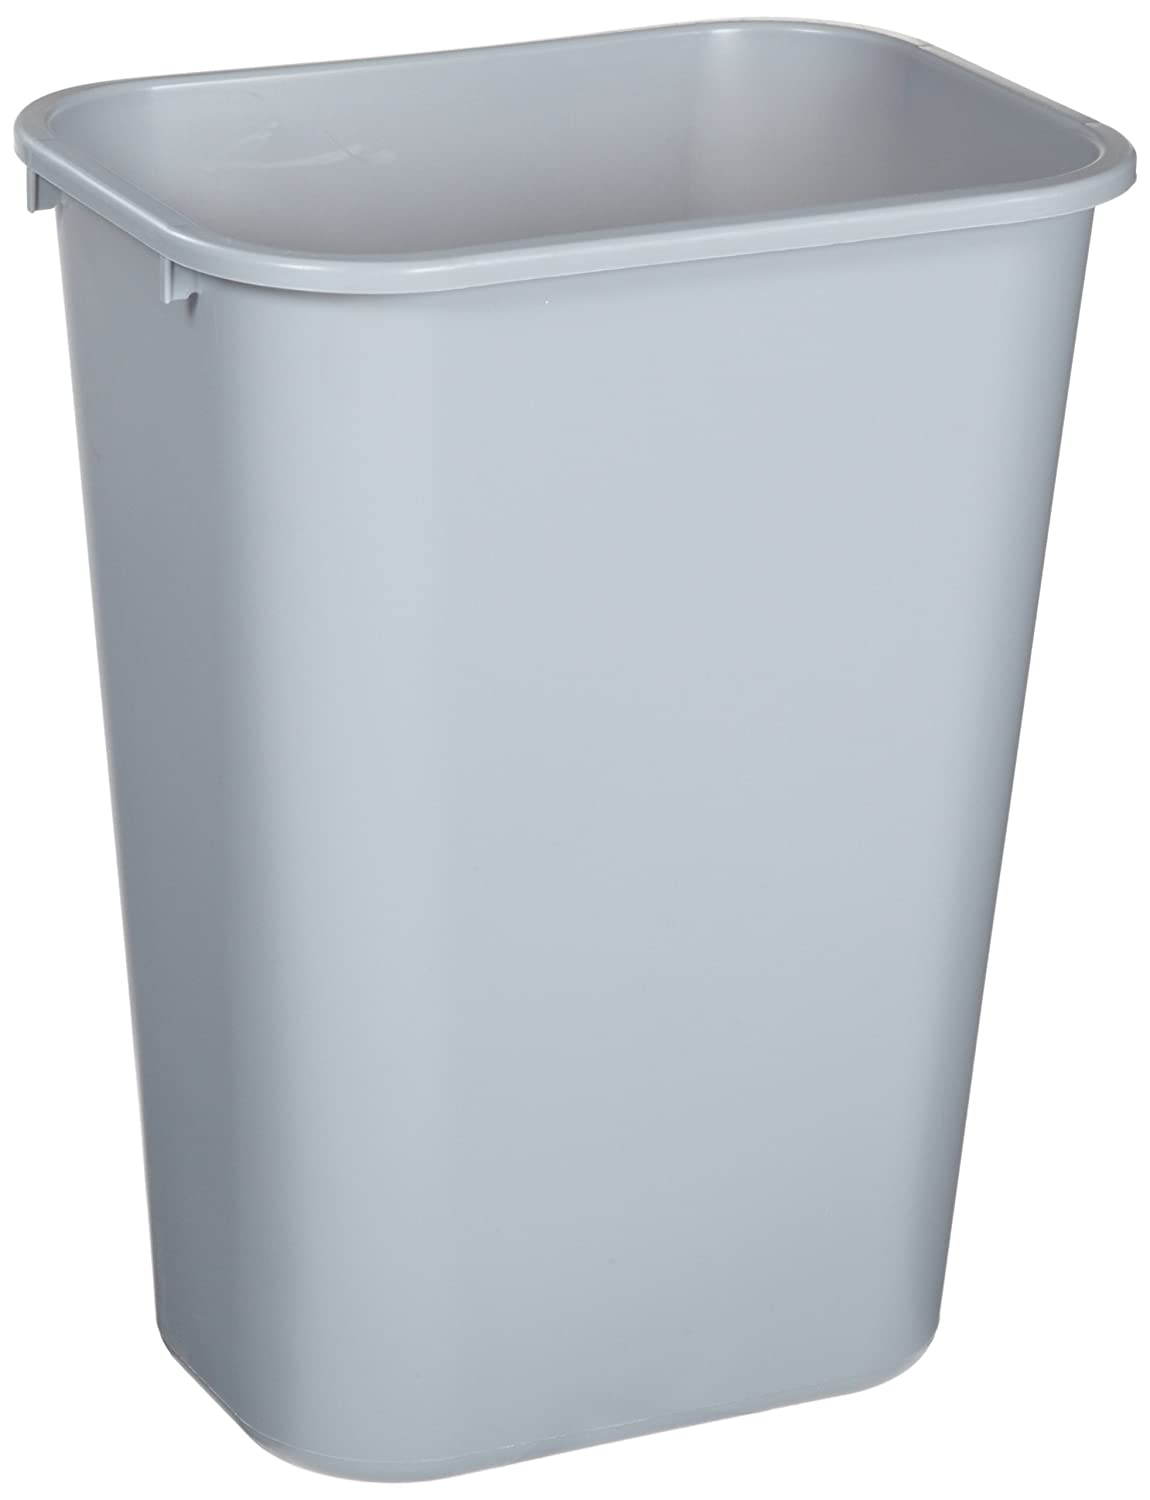 ... Wastebasket Plastic Trash Can Bin Garbage Office Kitchen USA | eBay